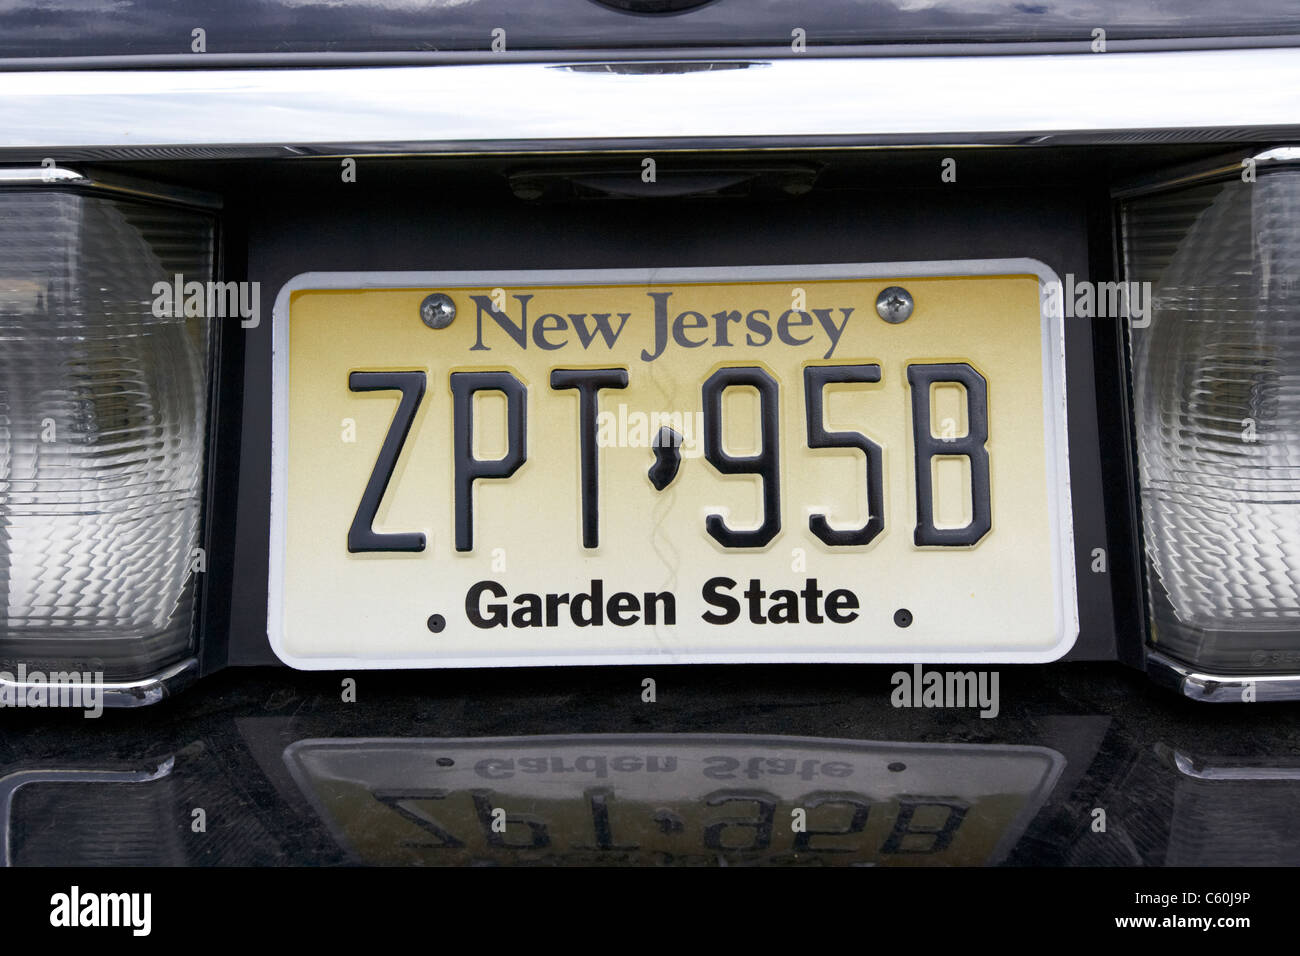 new jersey garden state vehicle license plate state usa Stock ...